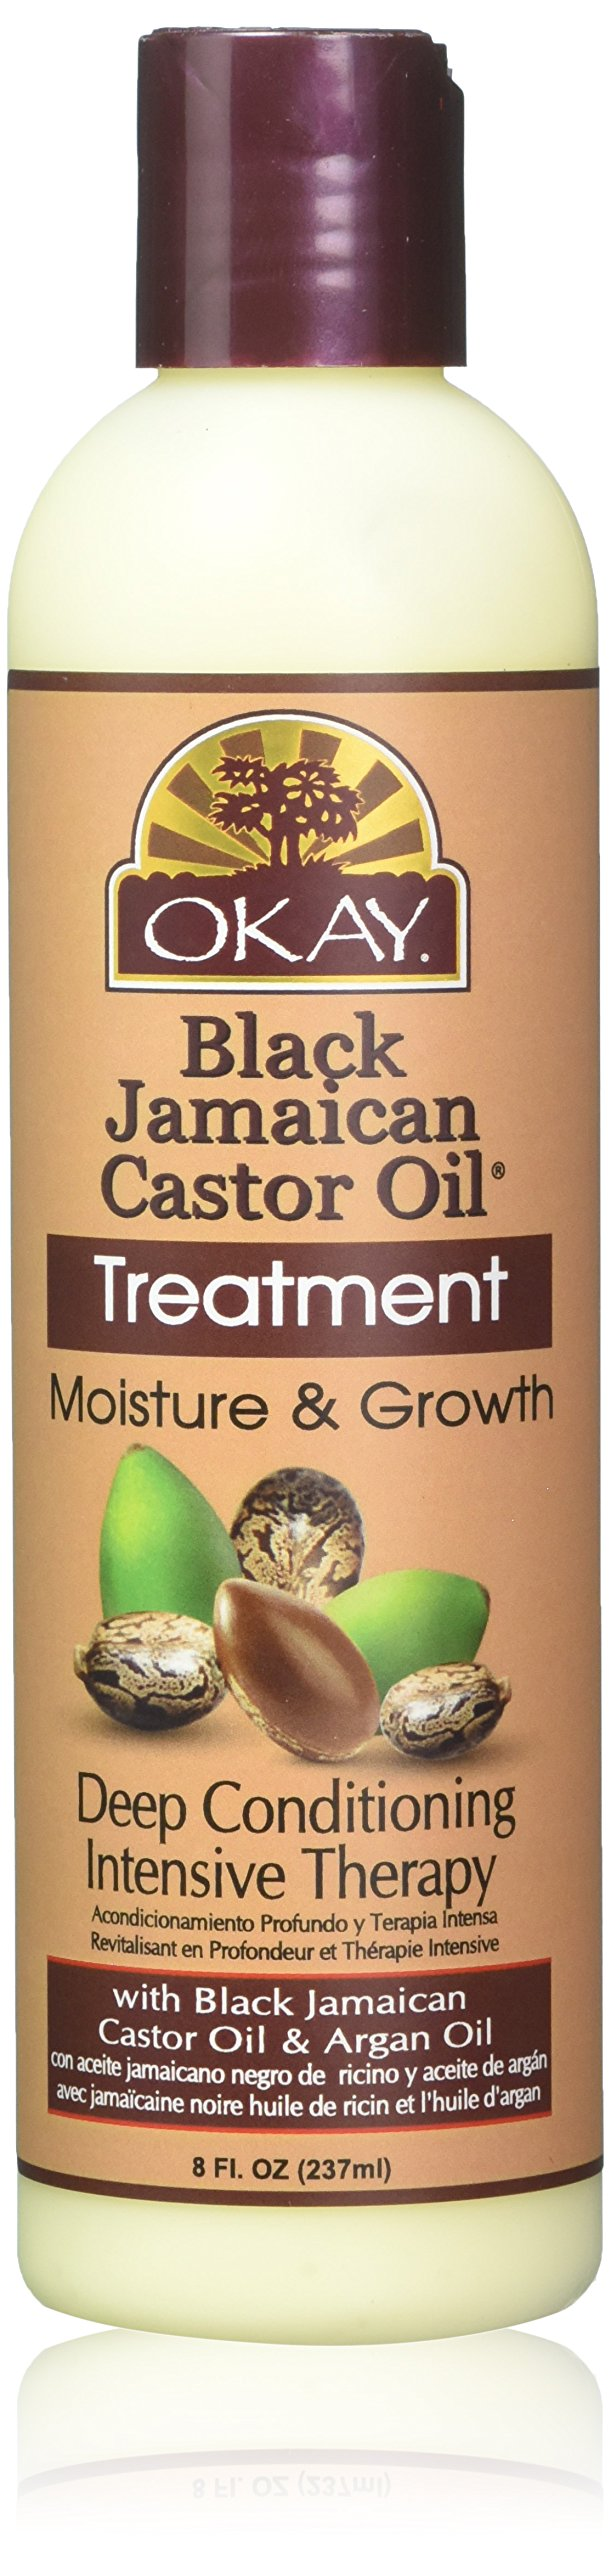 Okay Jamaican Castor Oil, Moisture Growth Treatment, Black, 8 oz.